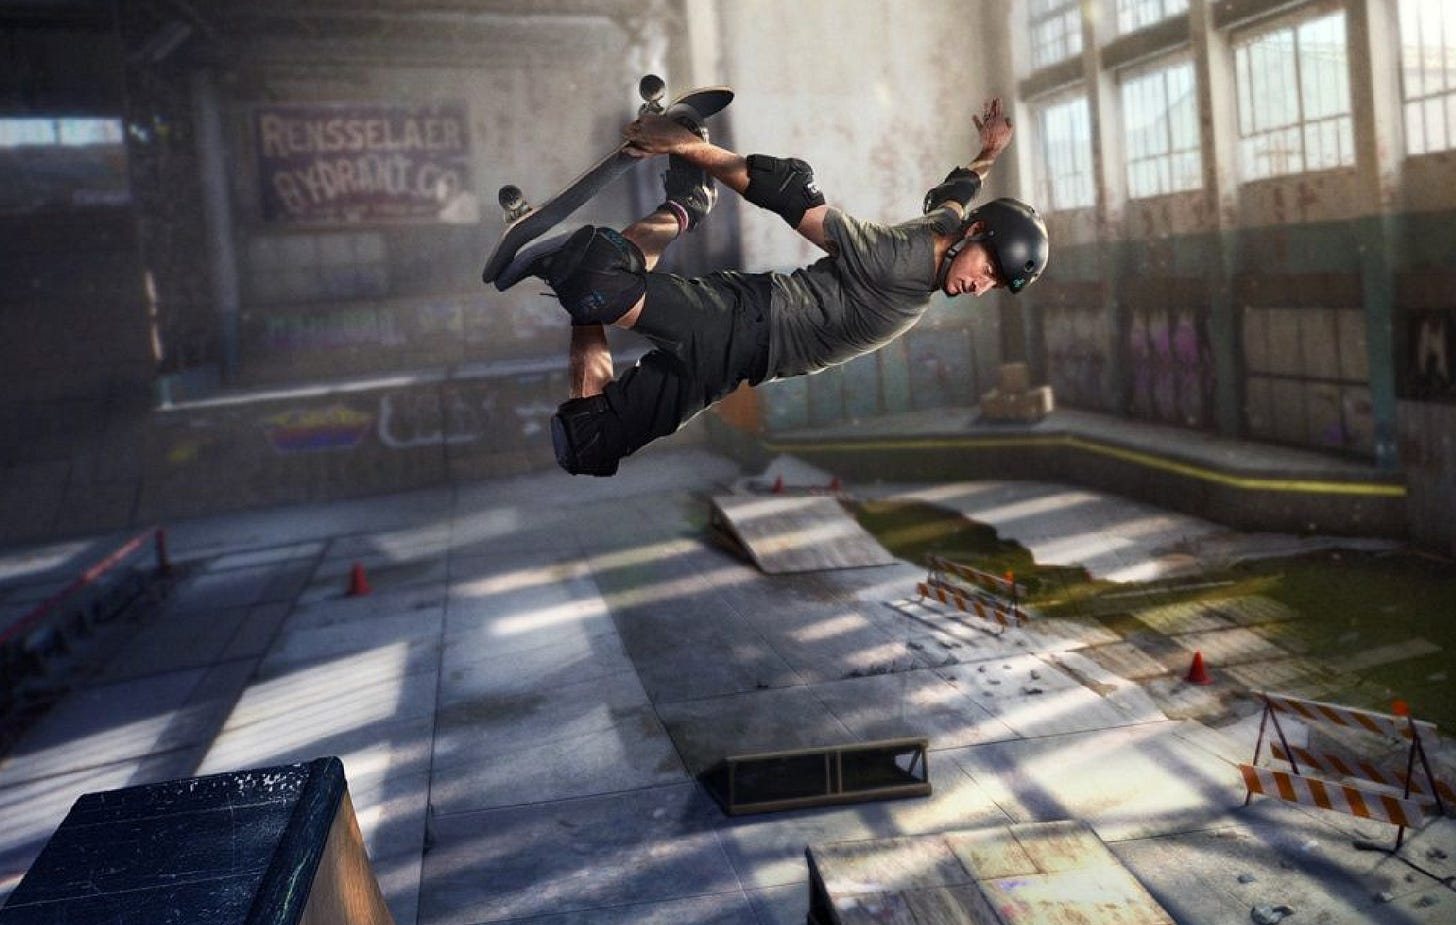 'Tony Hawk's Pro Skater 1 + 2' review: a gnarly remaster bound to inspire a  new generation of skaters